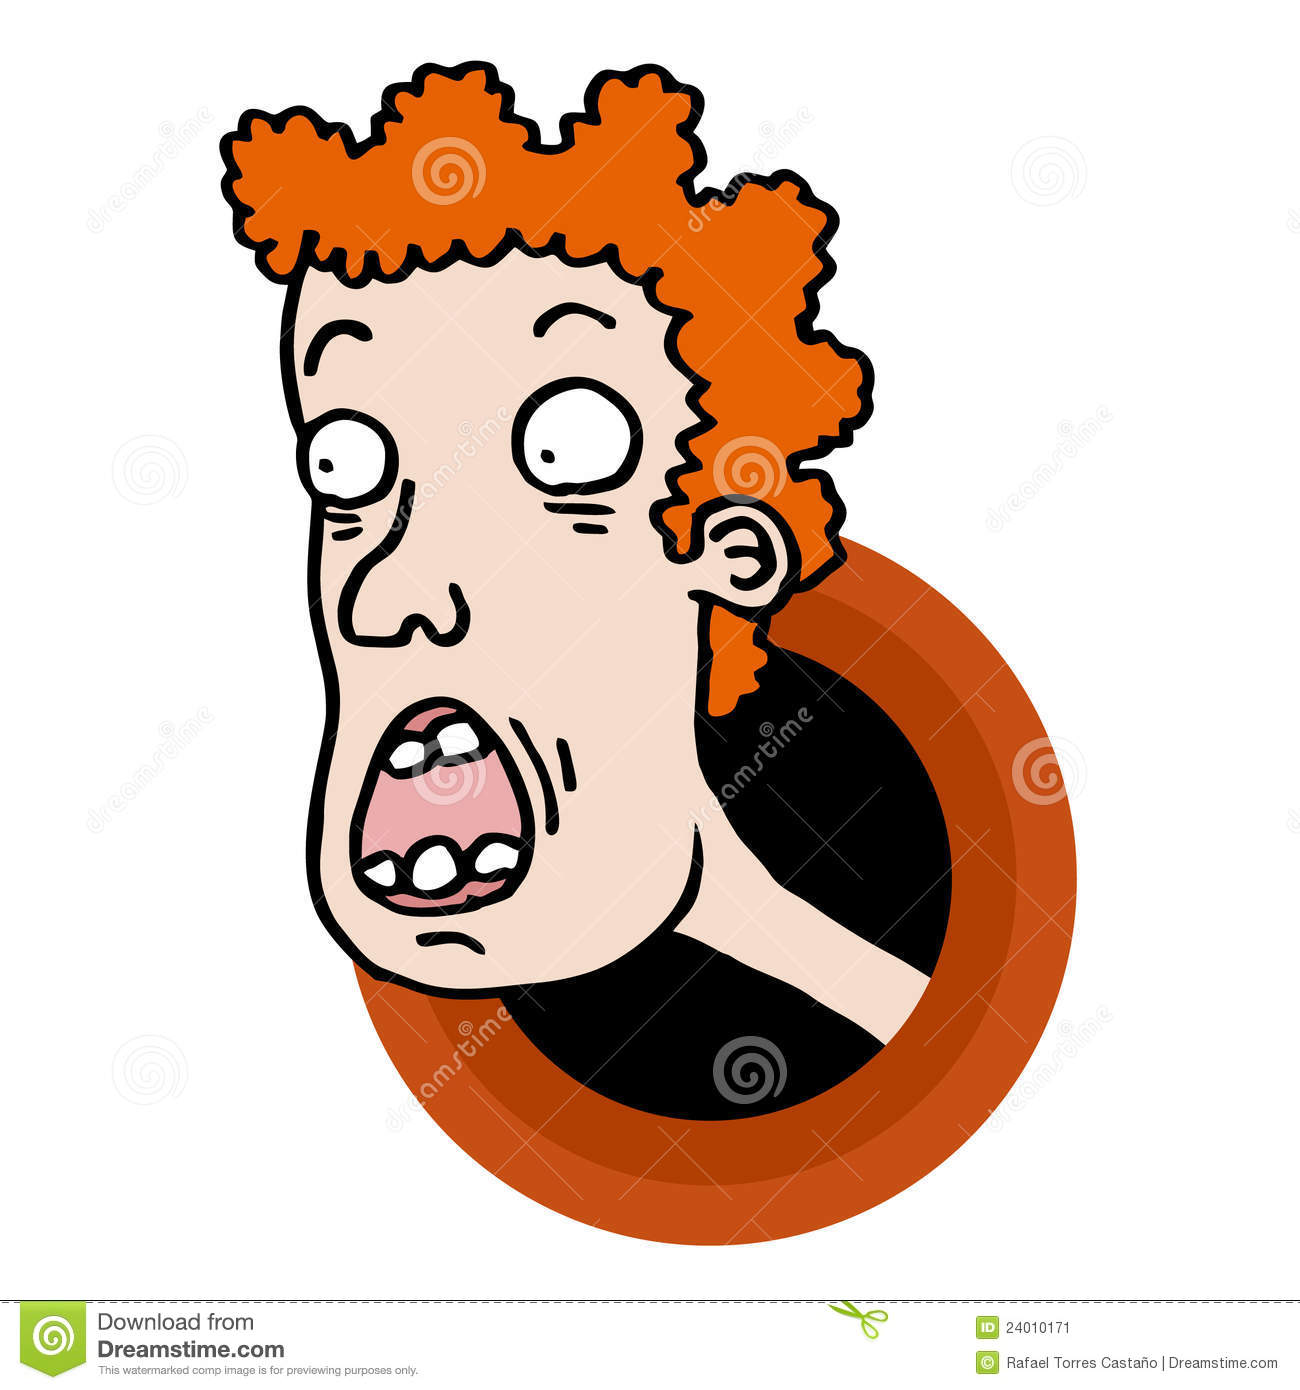 Cartoon Characters Ugly : Ugly cartoon face stock image